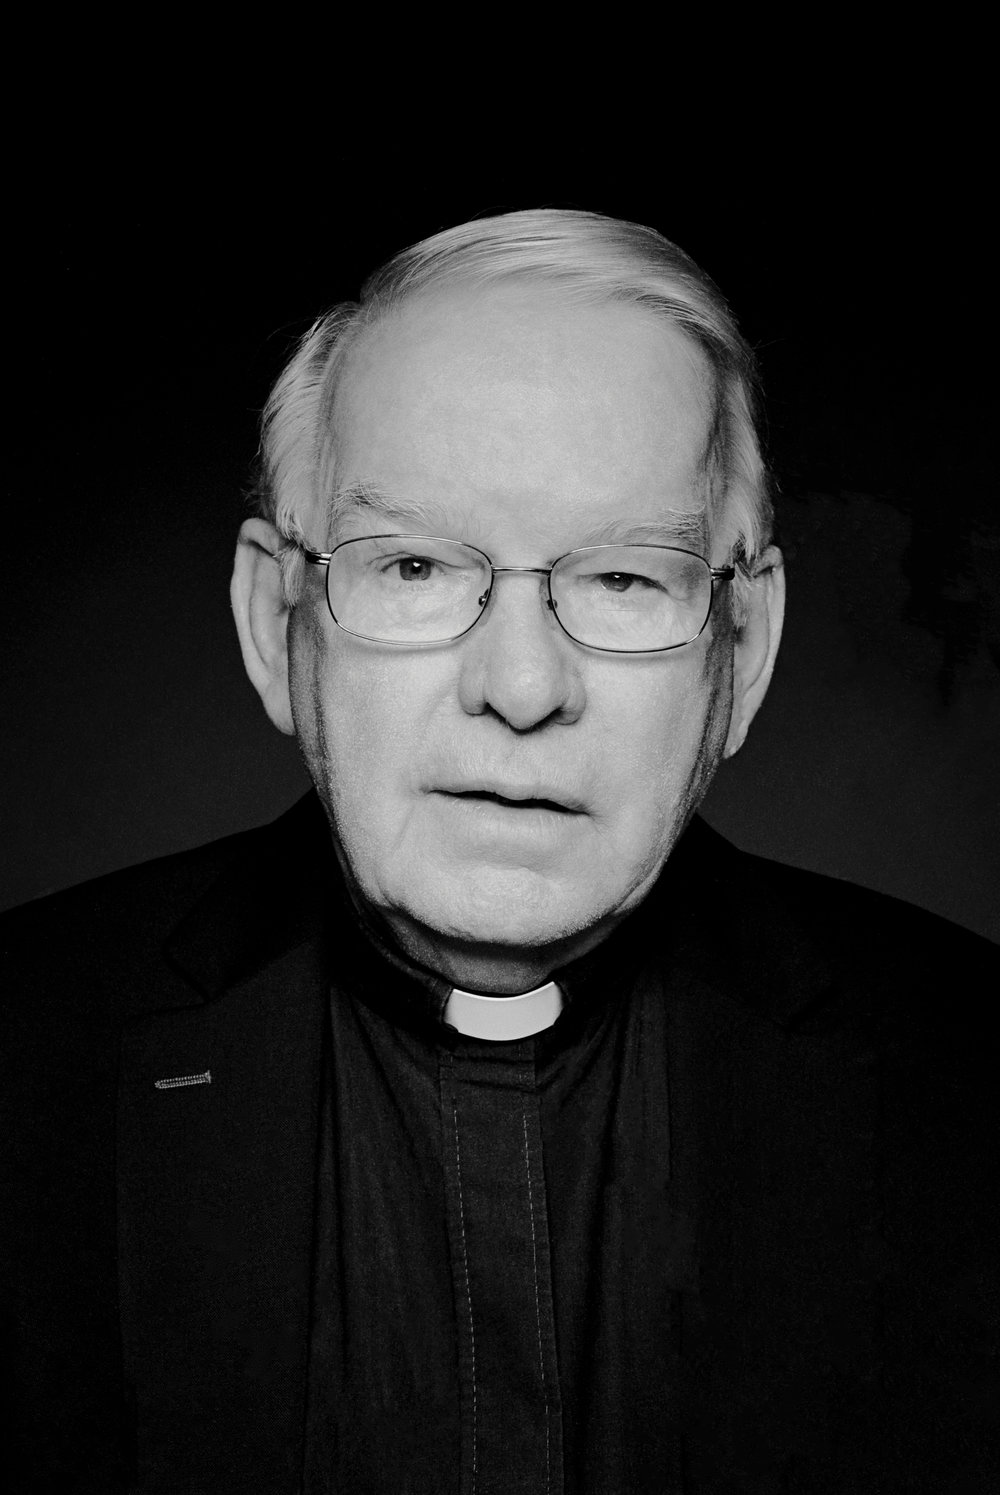 Inside The Film: Fr. Buckley, S.J.